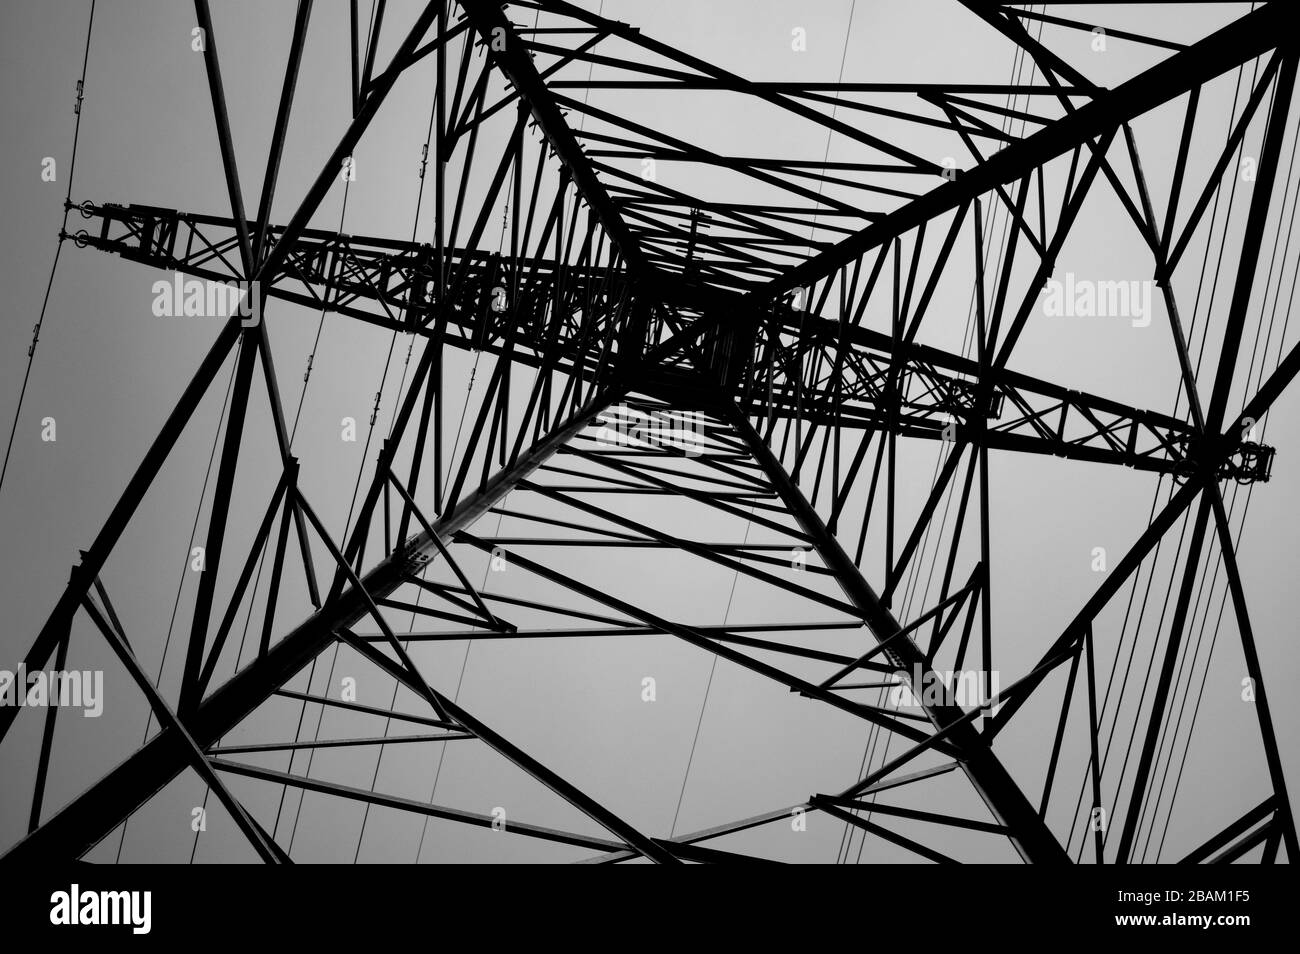 High Voltage Power Transmission Tower Power Line Stock Photo Alamy